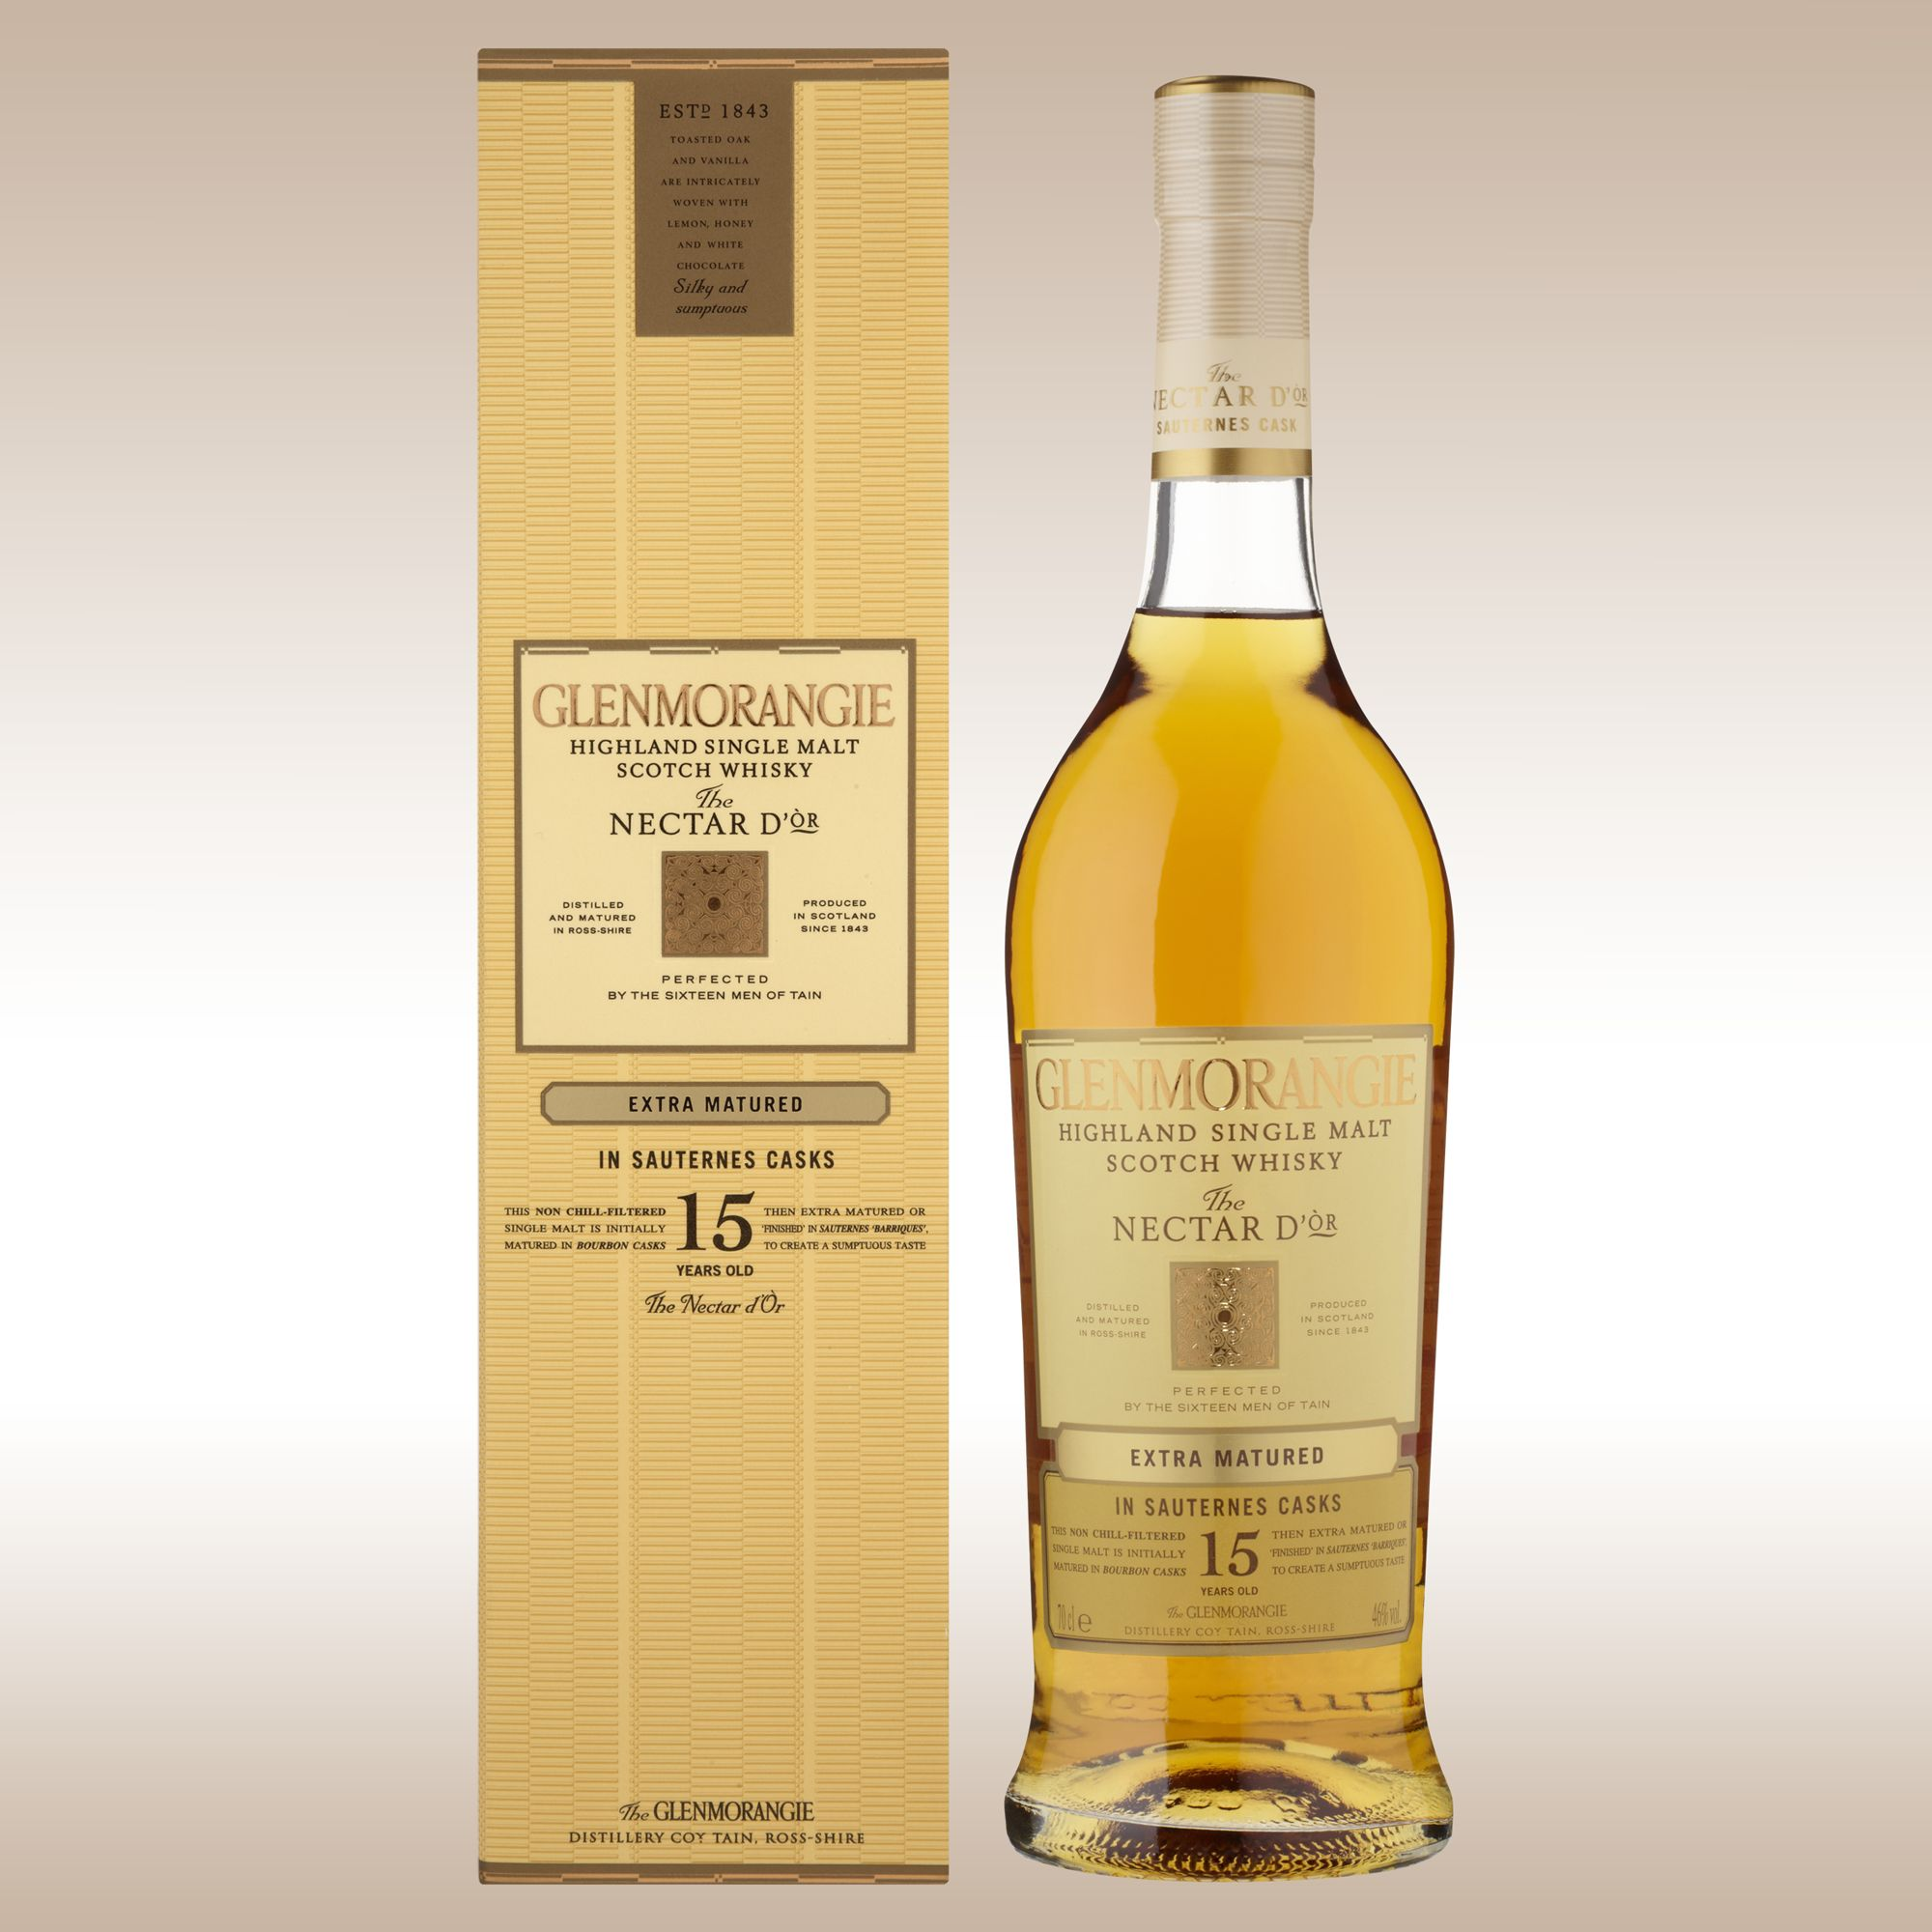 Glenmorangie Nectar D'or 15 Year Old Single Malt Whisky